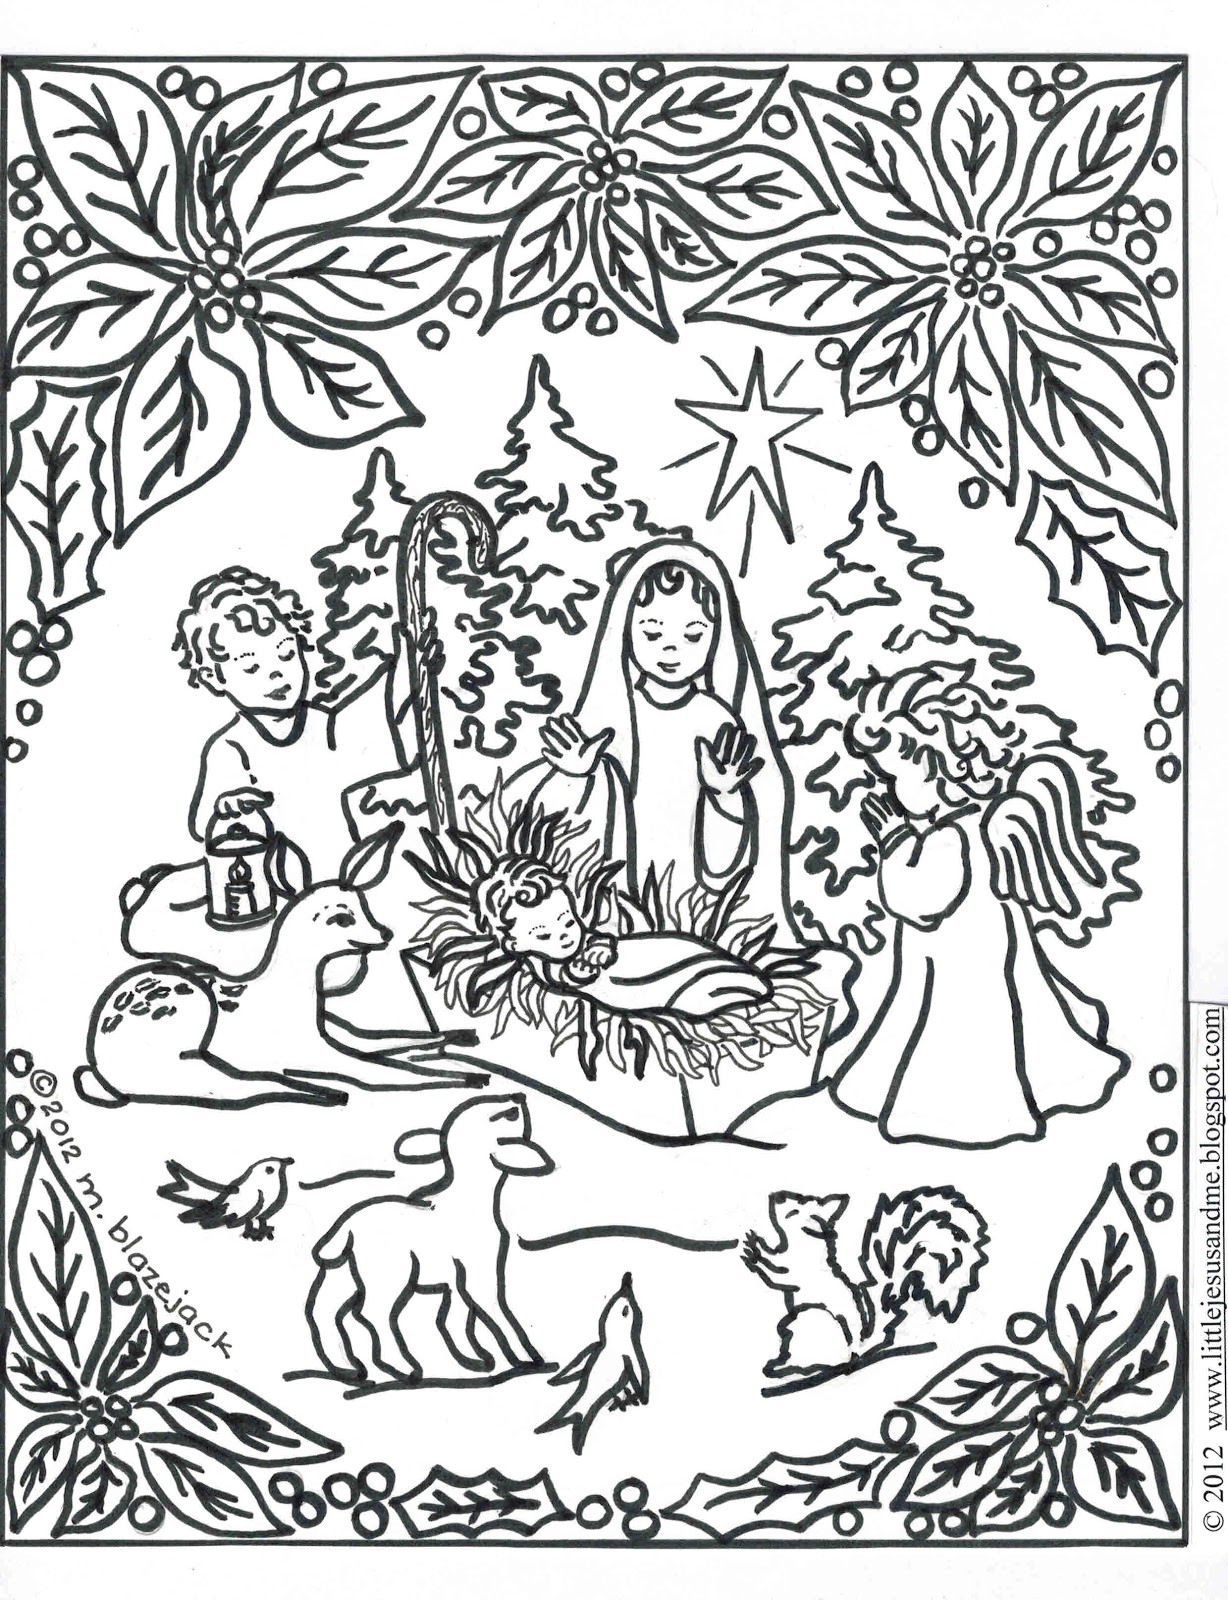 Christmas Printable Coloring Pages For Jesus. Baby Jesus Colour - Free Printable Christmas Baby Jesus Coloring Pages